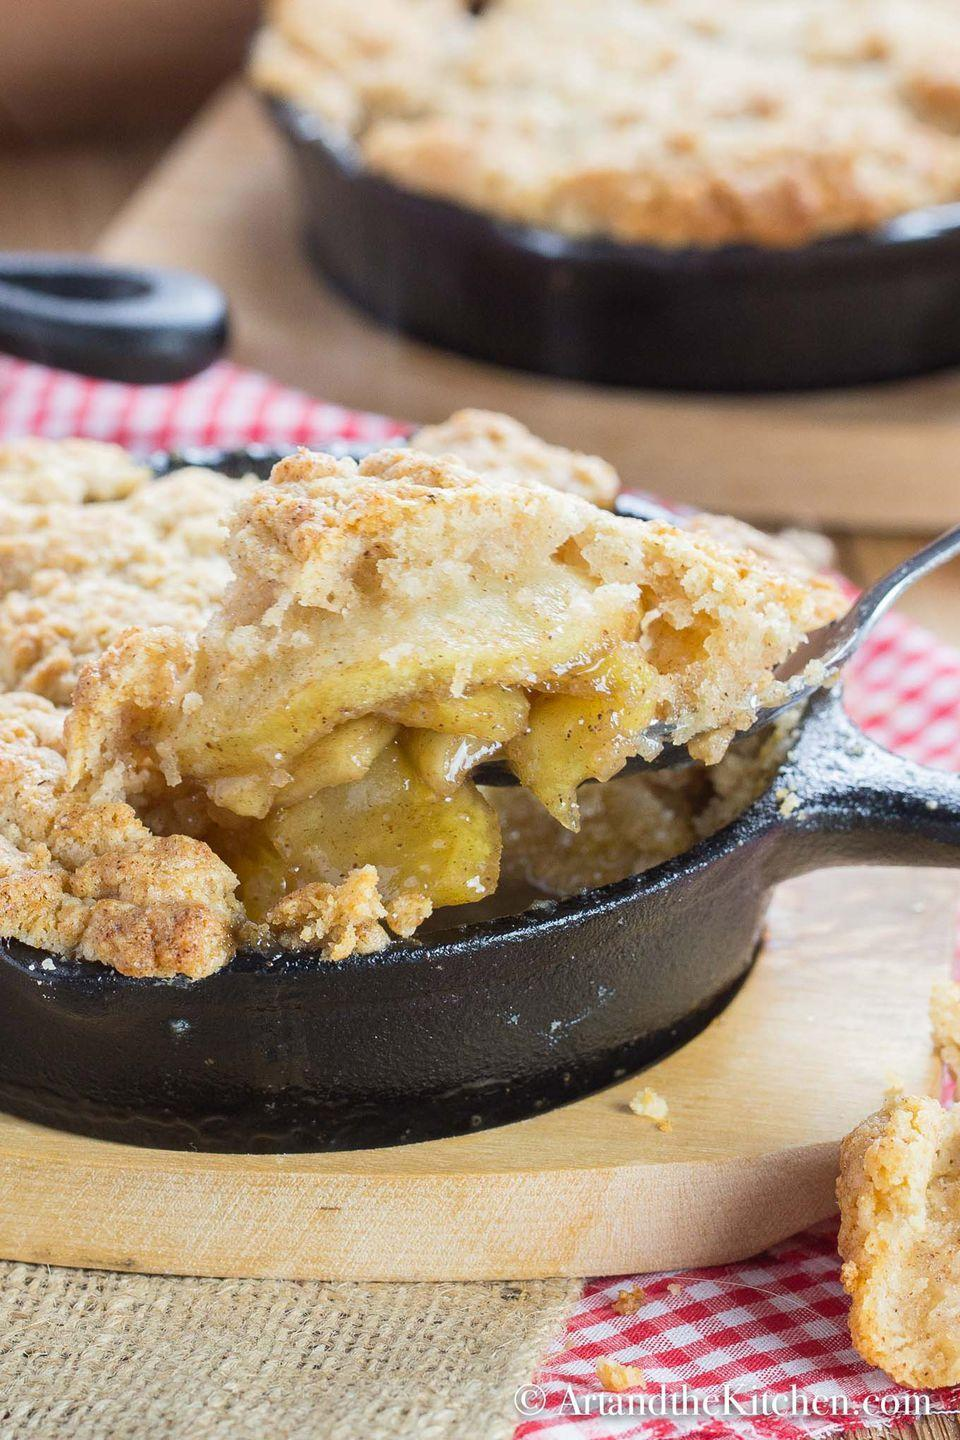 """<p>There's nothing like a classic apple cobbler with a warm filling and flaky biscuit crust. You can make this recipe in individual servings, too, so everyone gets their own cobbler.</p><p><strong>Get the recipe at Art and <a rel=""""nofollow noopener"""" href=""""https://www.artandthekitchen.com/apple-cobbler/"""" target=""""_blank"""" data-ylk=""""slk:The Kitchen"""" class=""""link rapid-noclick-resp"""">The Kitchen</a>.</strong><br></p><p><a rel=""""nofollow noopener"""" href=""""https://www.amazon.com/Lodge-LMS3-Miniature-Skillet-3-5-inch/dp/B00OBUW4TU"""" target=""""_blank"""" data-ylk=""""slk:SHOP CAST IRON SKILLETS"""" class=""""link rapid-noclick-resp"""">SHOP CAST IRON SKILLETS</a></p>"""